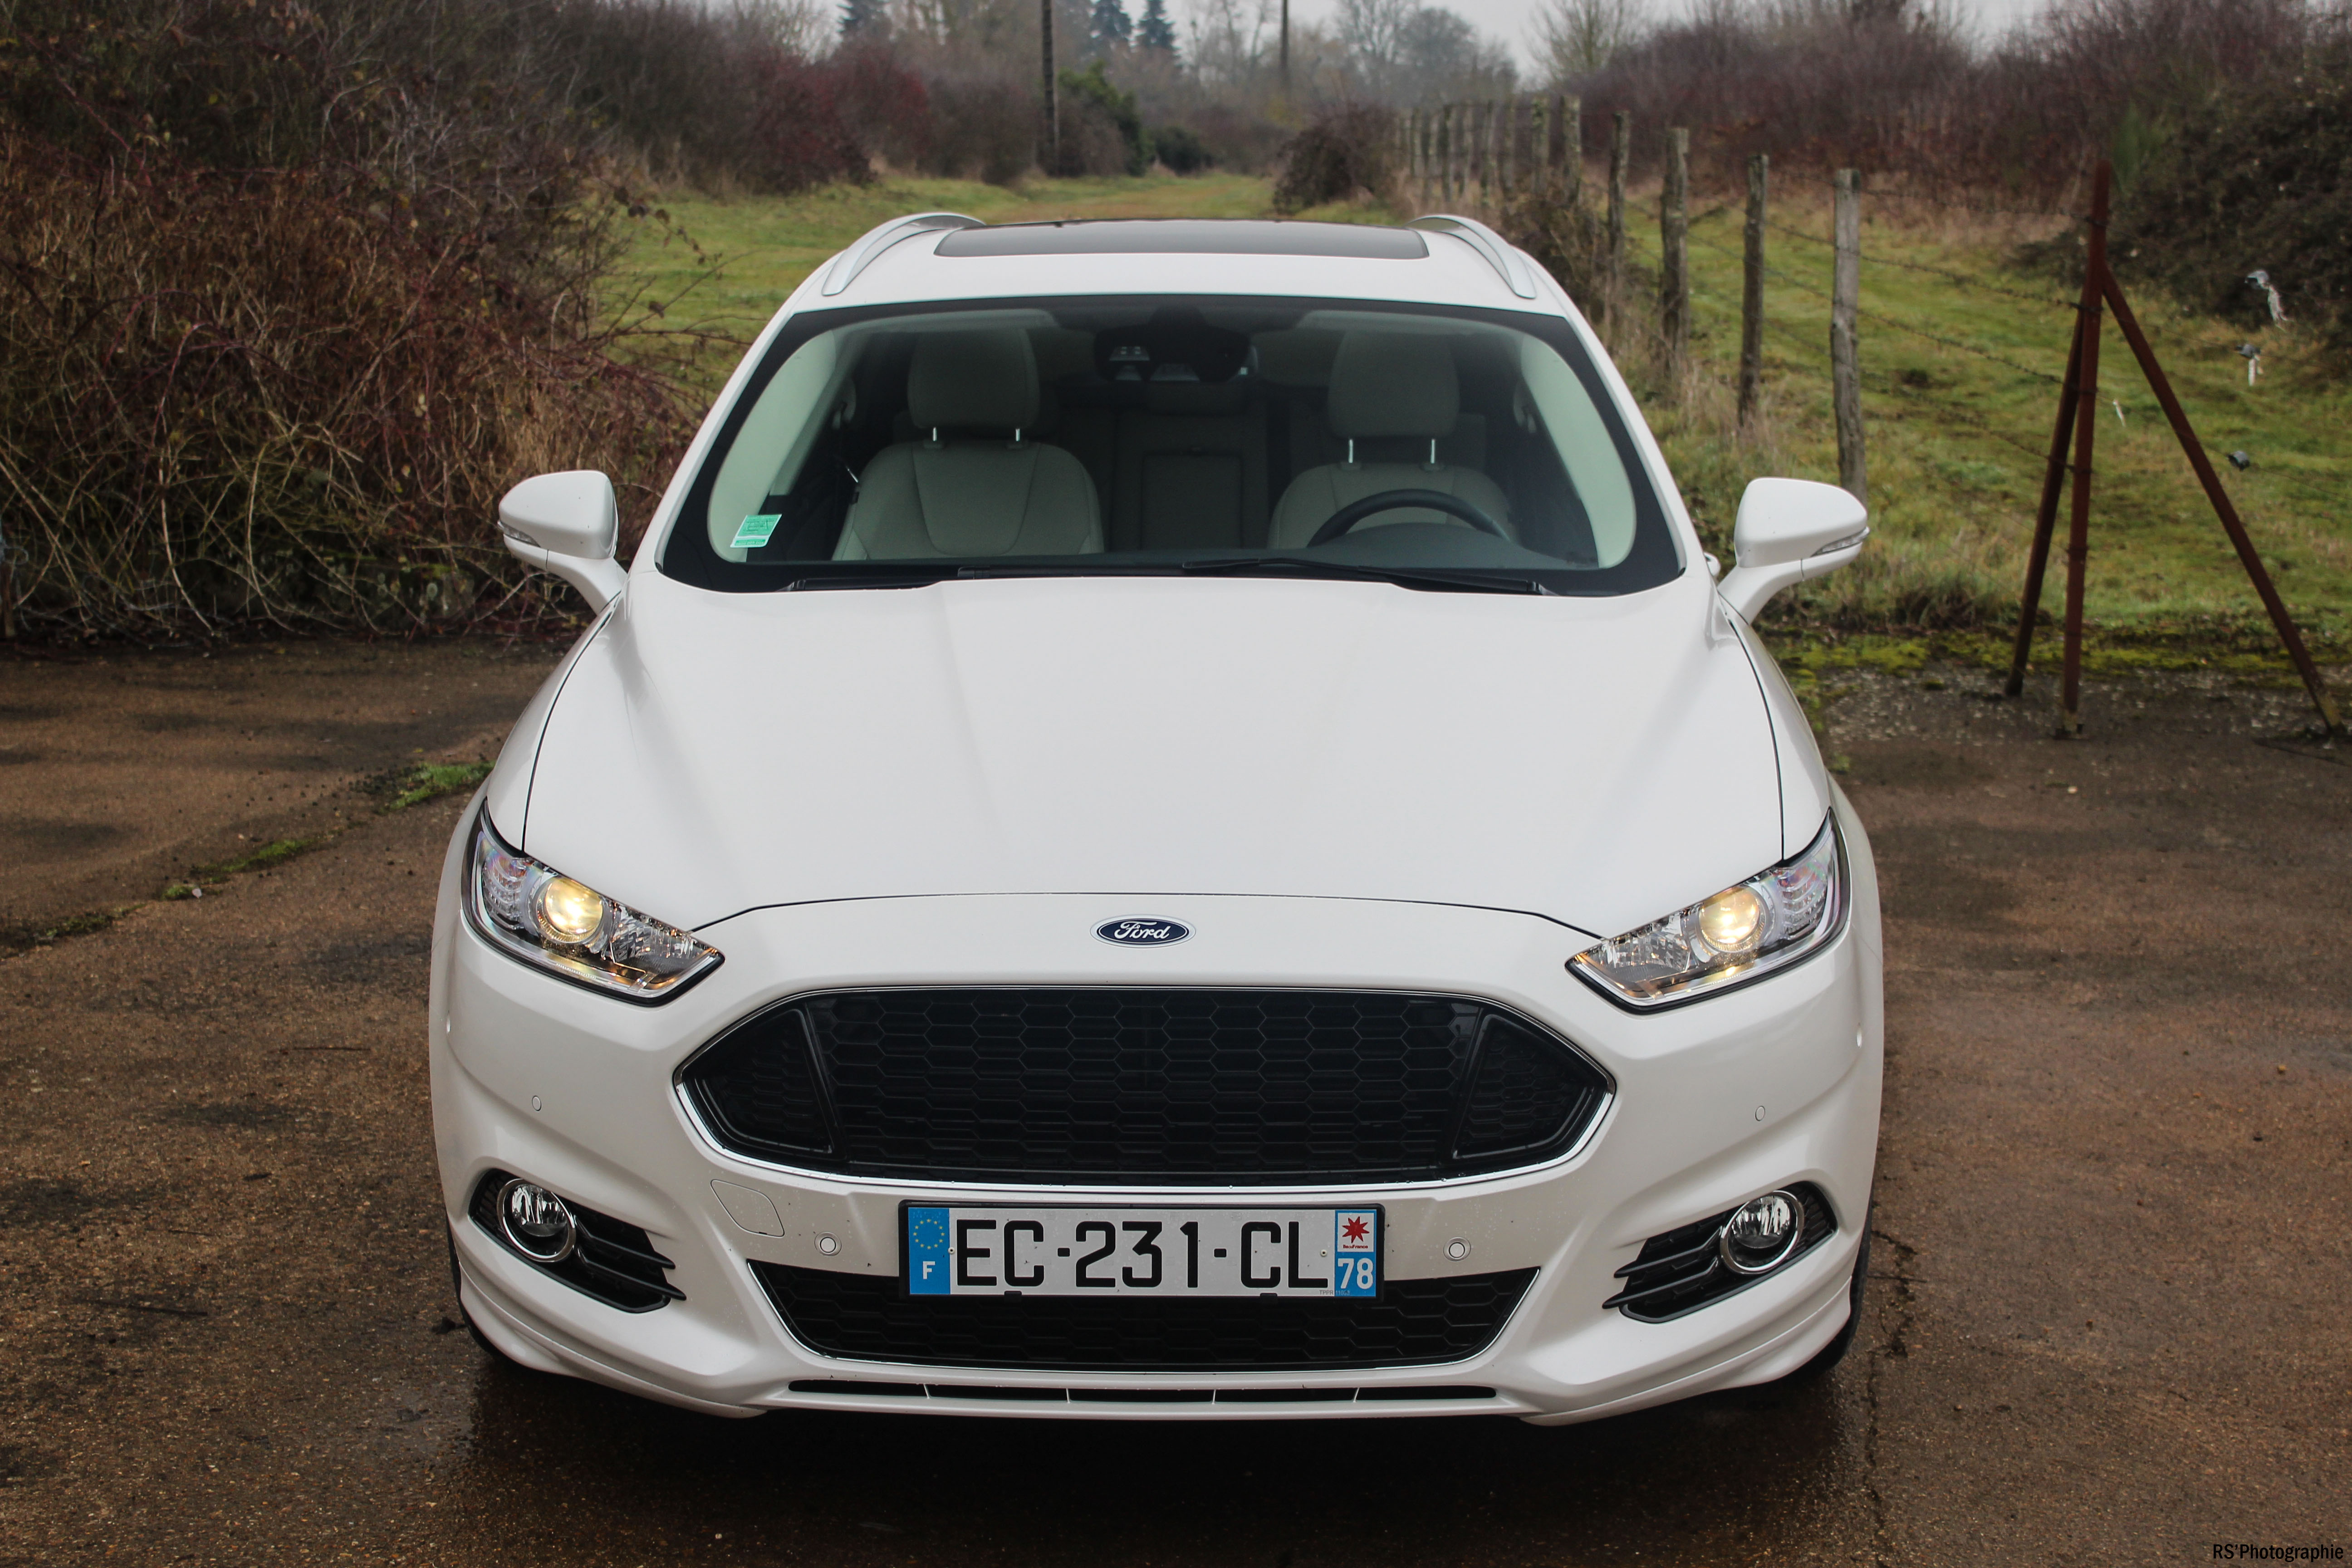 FordMondeoSW25-ford-mondeo-sw-180-avant-front-arnaud-demasier-rsphotographie